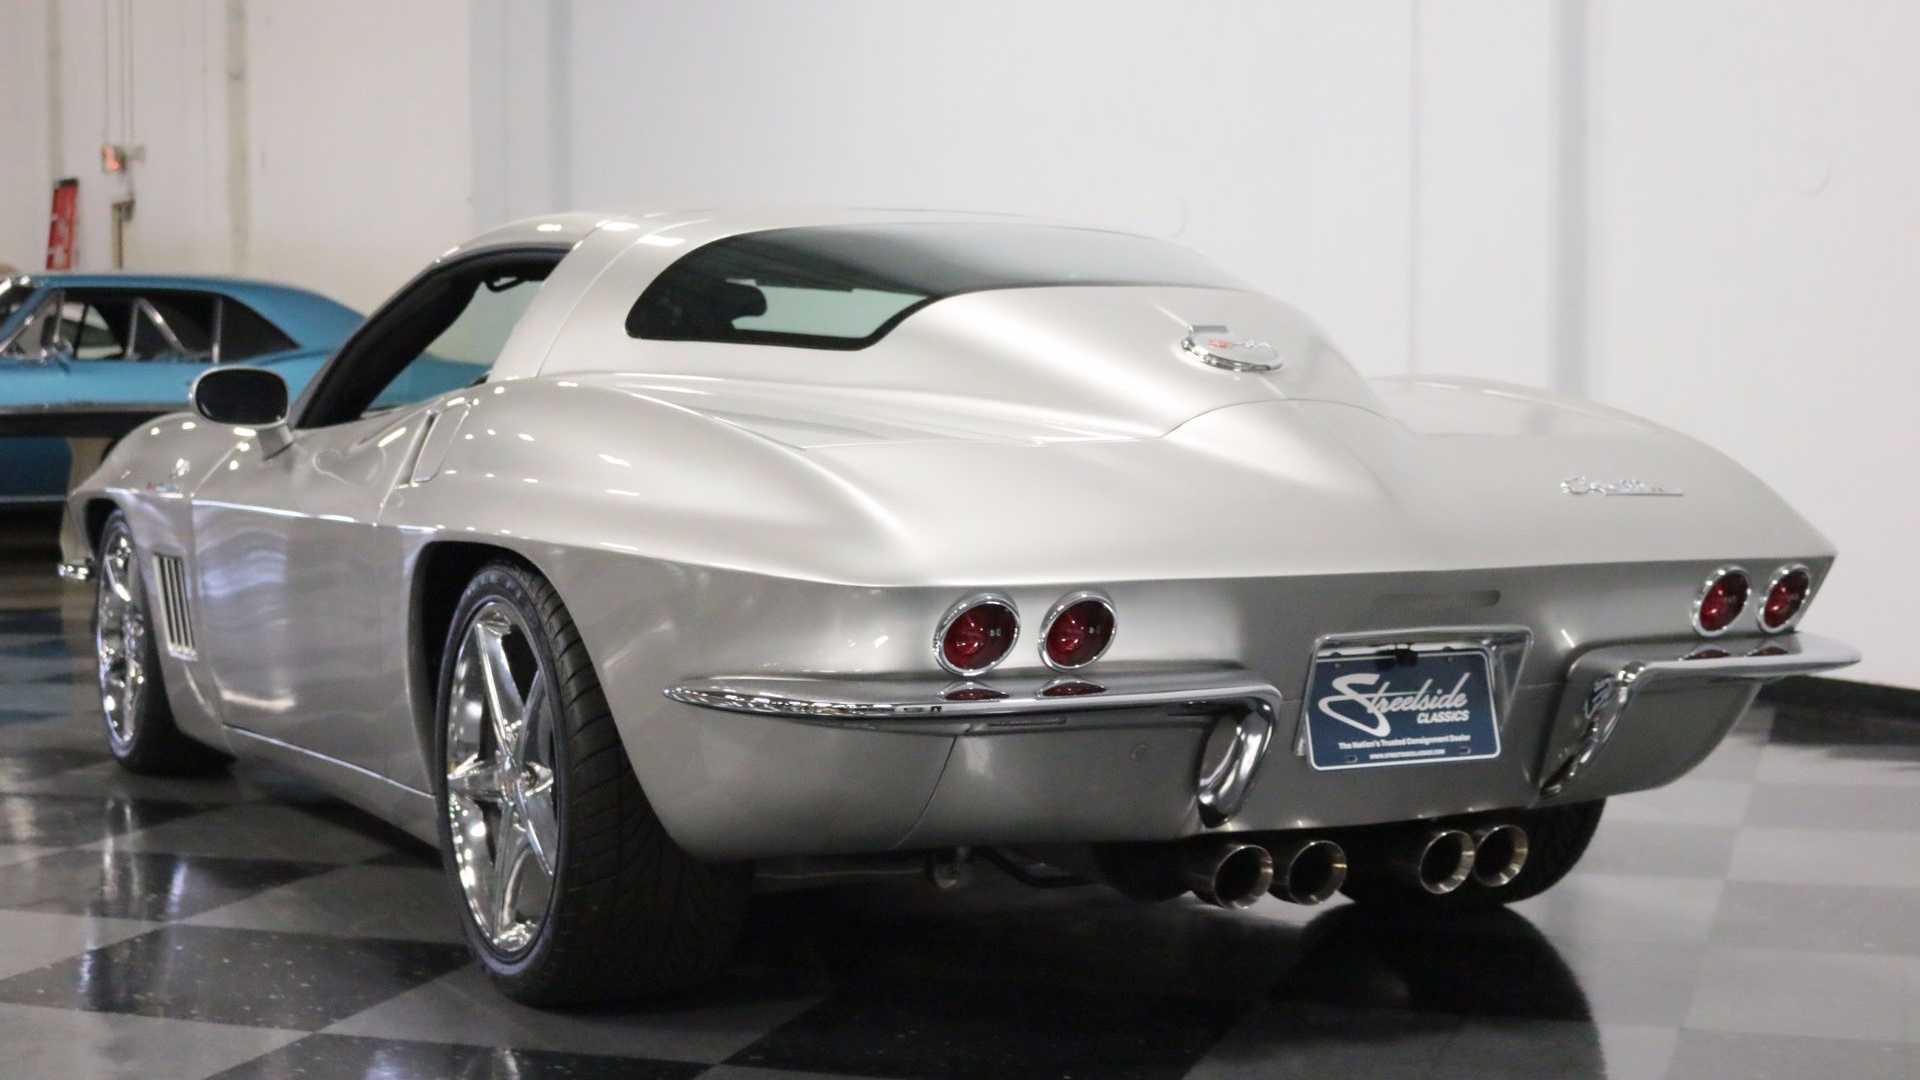 C6 Corvette Transformed With C2 Silhouette | Motorious